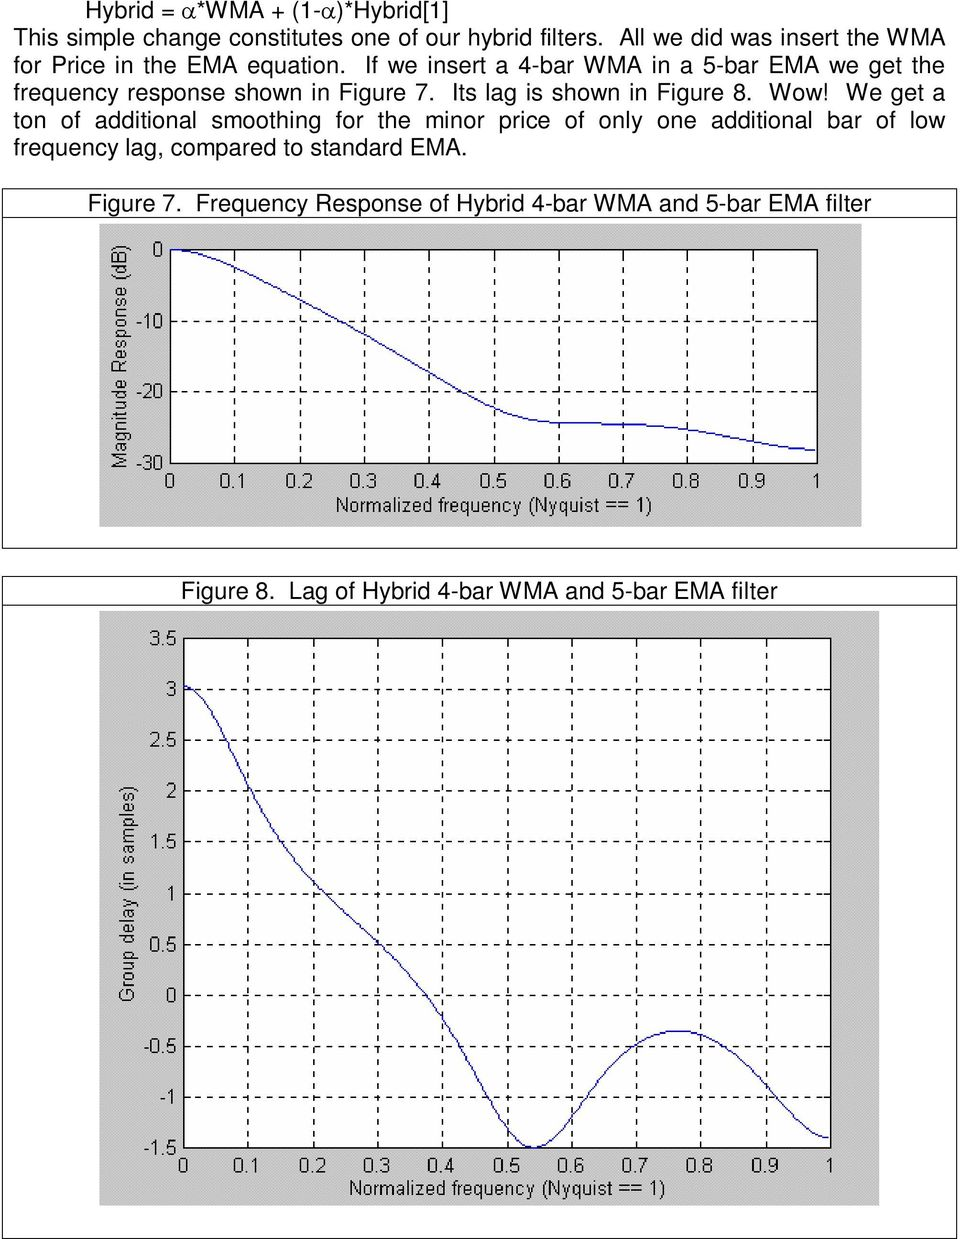 If we insert a 4-bar WMA in a 5-bar EMA we get the frequency response shown in Figure 7. Its lag is shown in Figure 8. Wow!